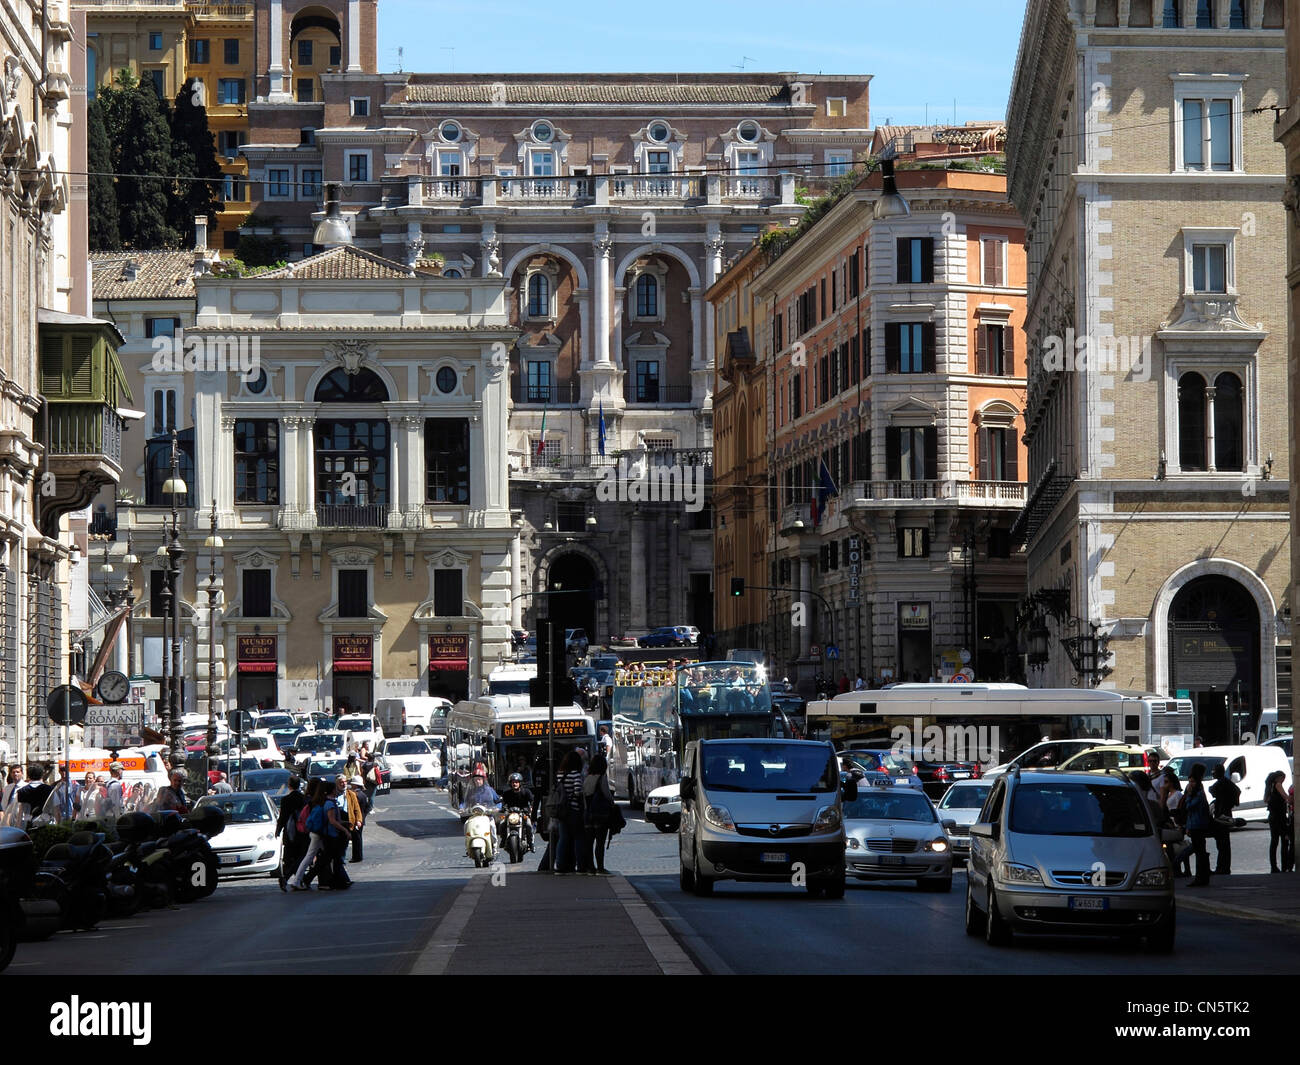 rome images downtown - photo#46